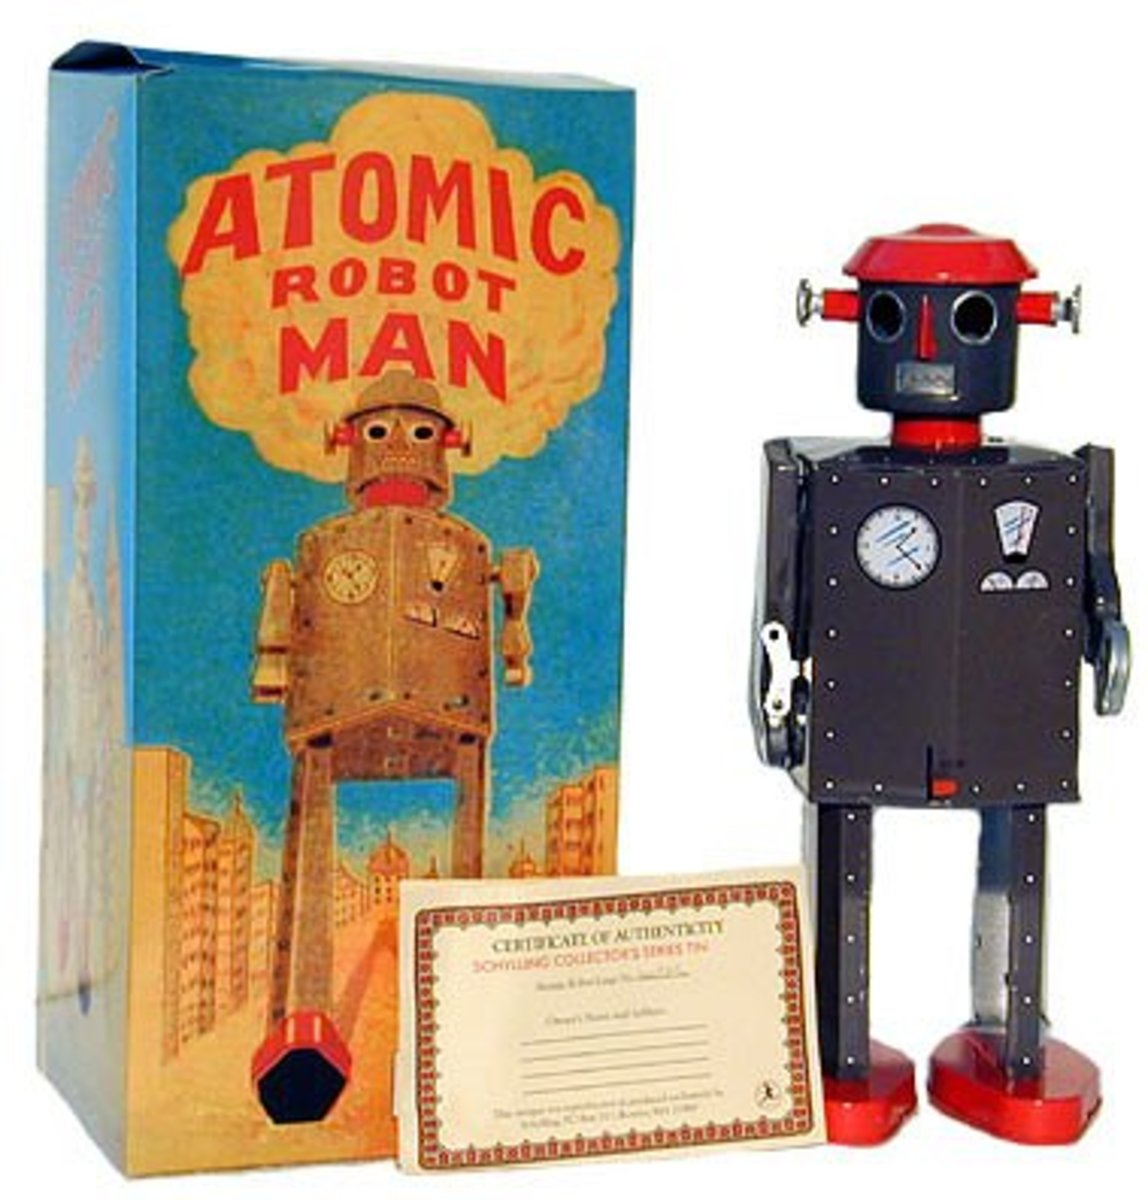 A reproduction. The original Atomic men had tan coloured bodies.